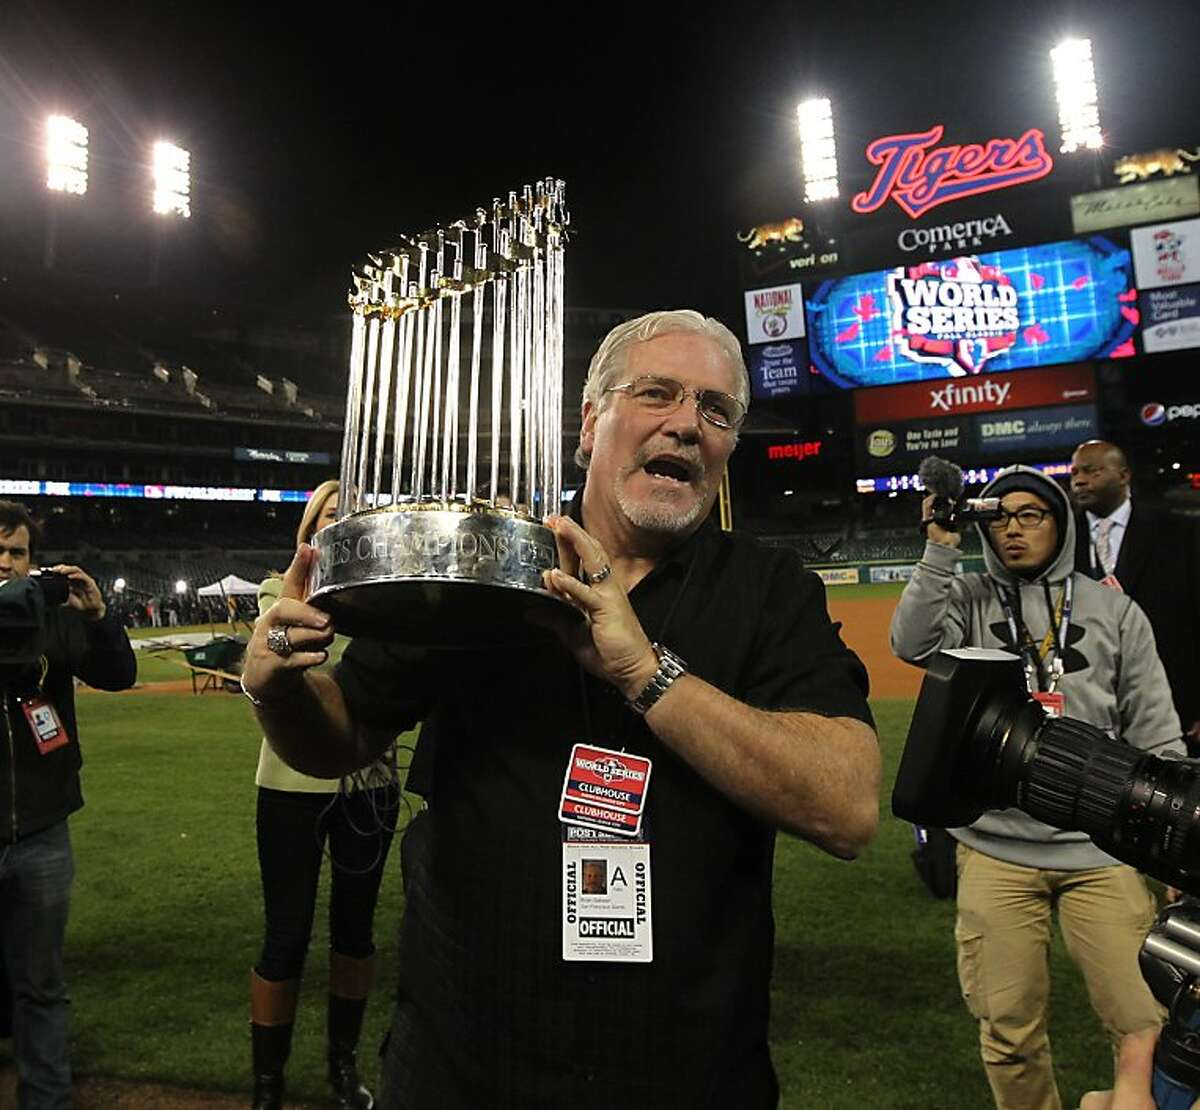 Brian Sabean holds the championship trophy after game 4 of the World Series at Comerica Park on Sunday, Oct. 28, 2012 in Detroit, MI.